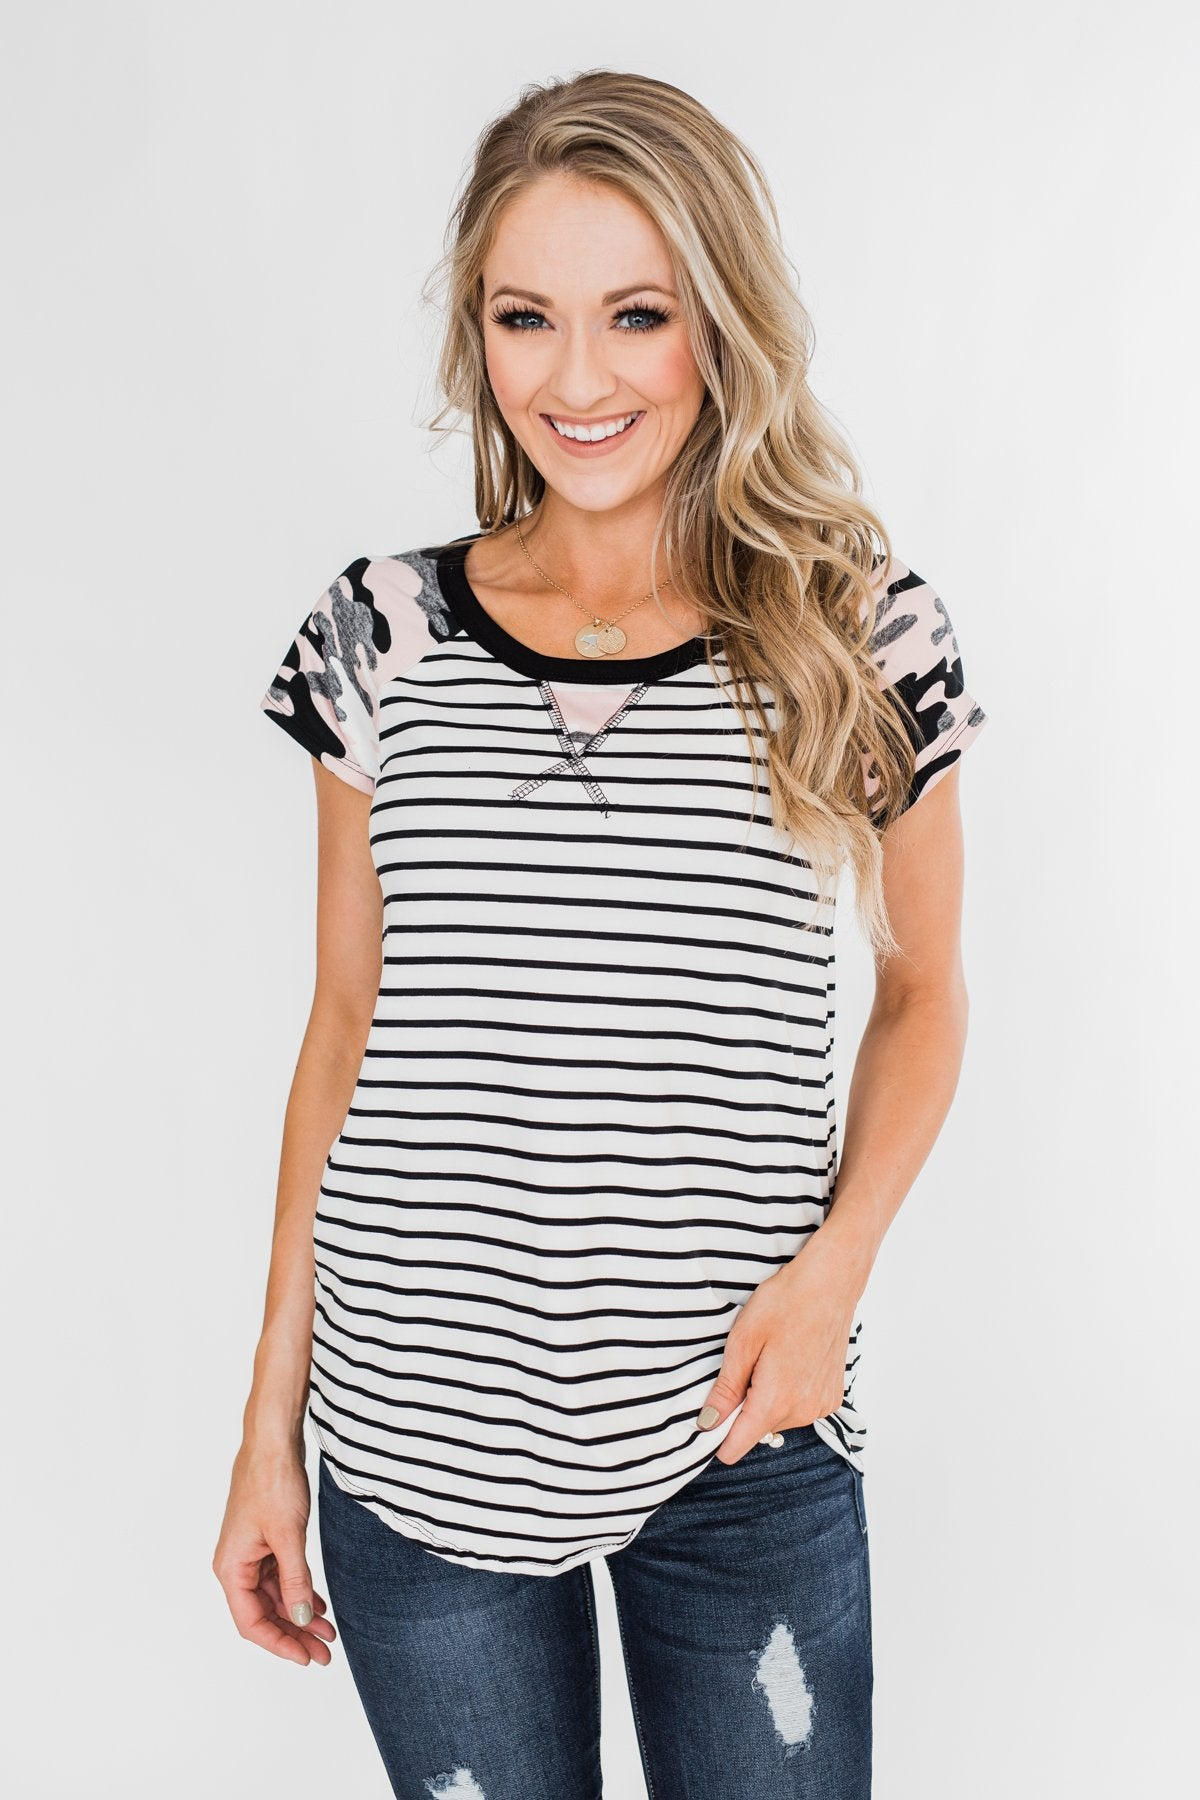 Short Sleeve Camo & Stripes Top- Pink Camo & Ivory